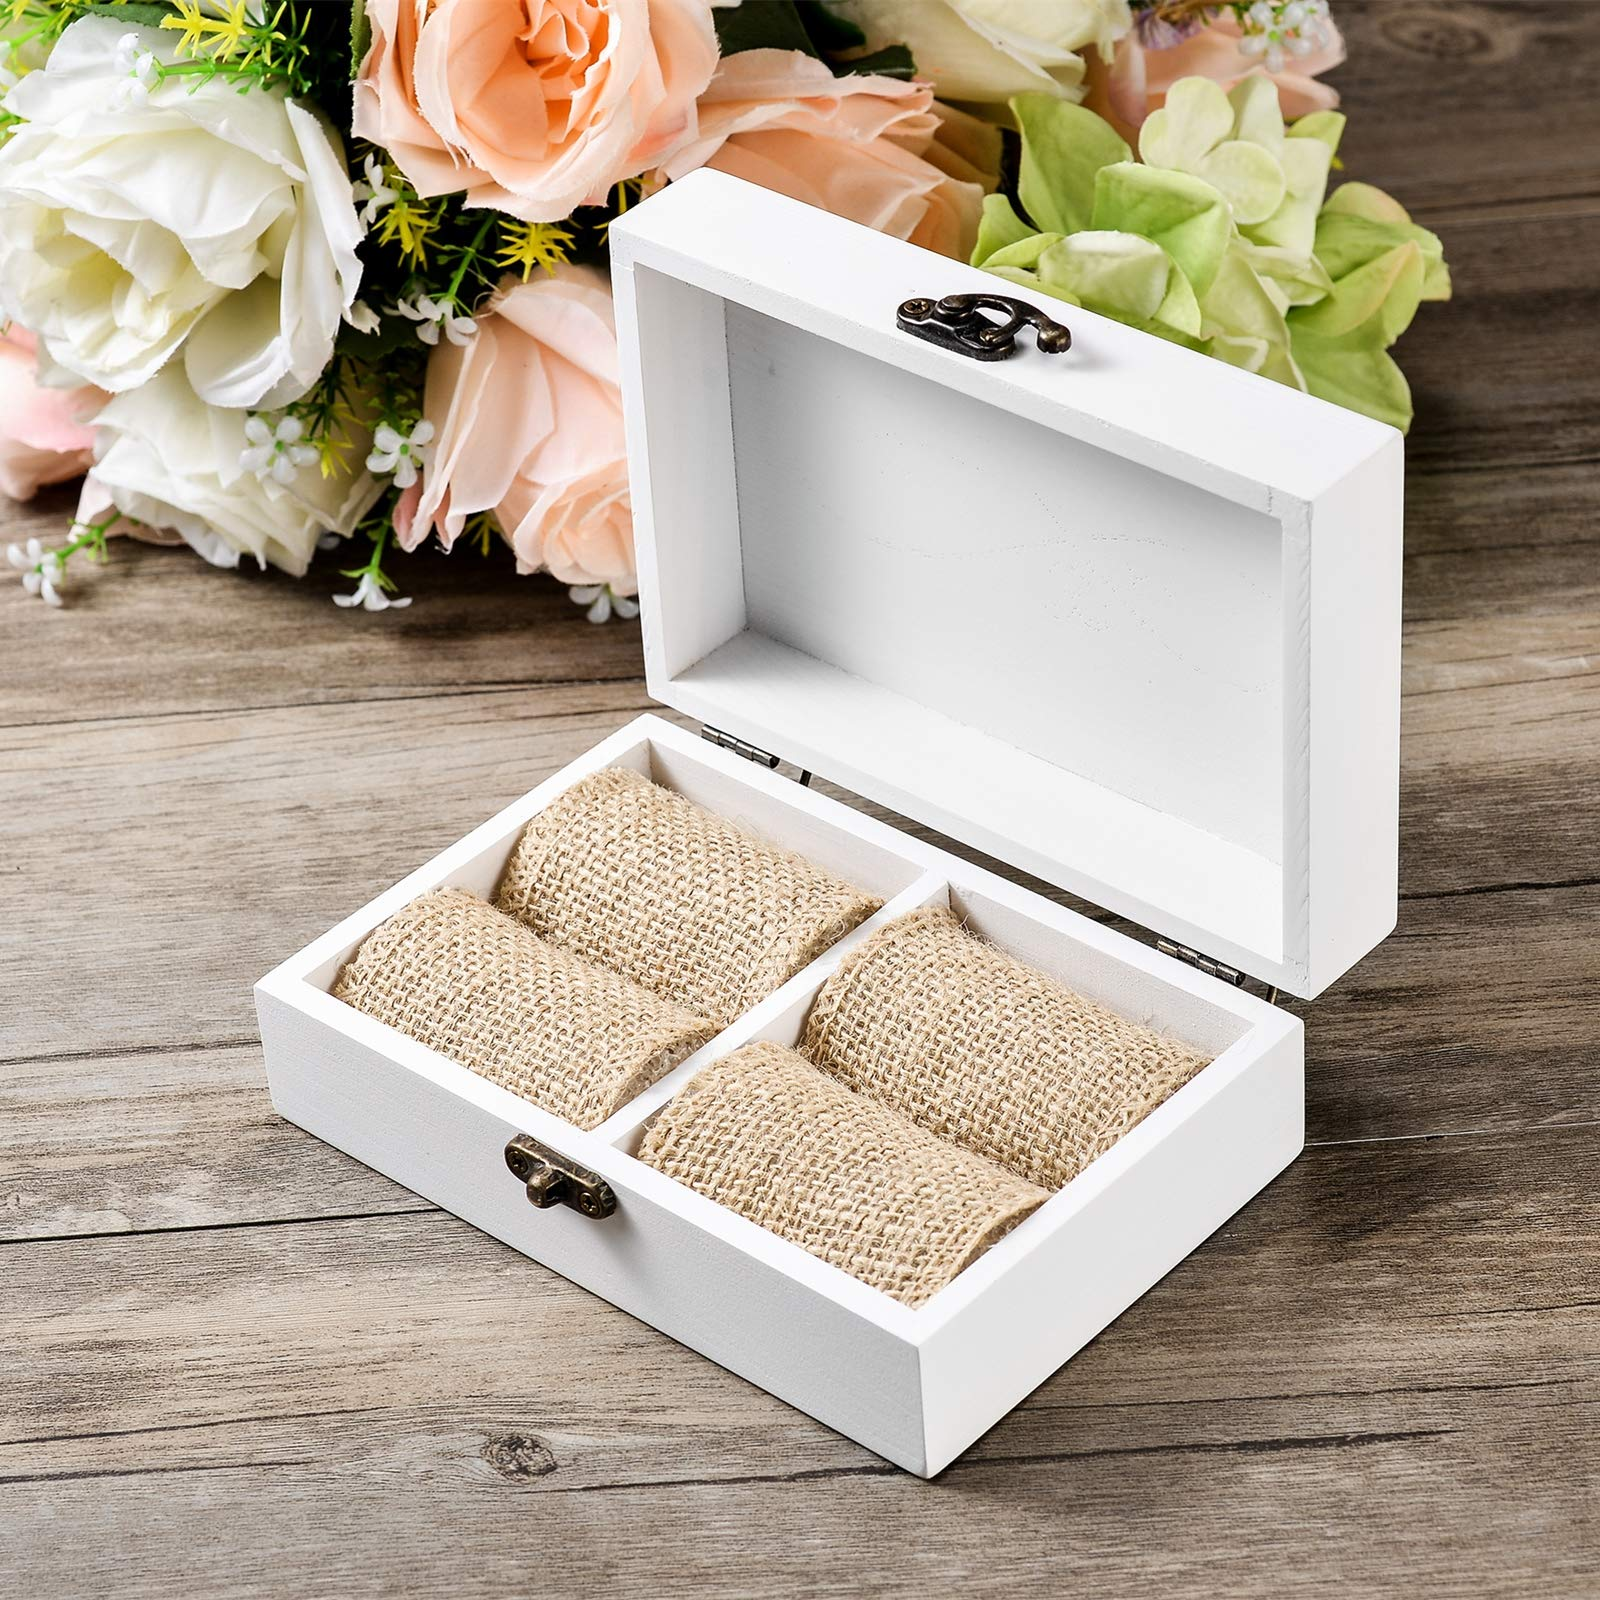 AW Rustic Wood Wedding Ring Bearer Box Jewelry Box for Wedding Ceremony by AWEI (Image #1)